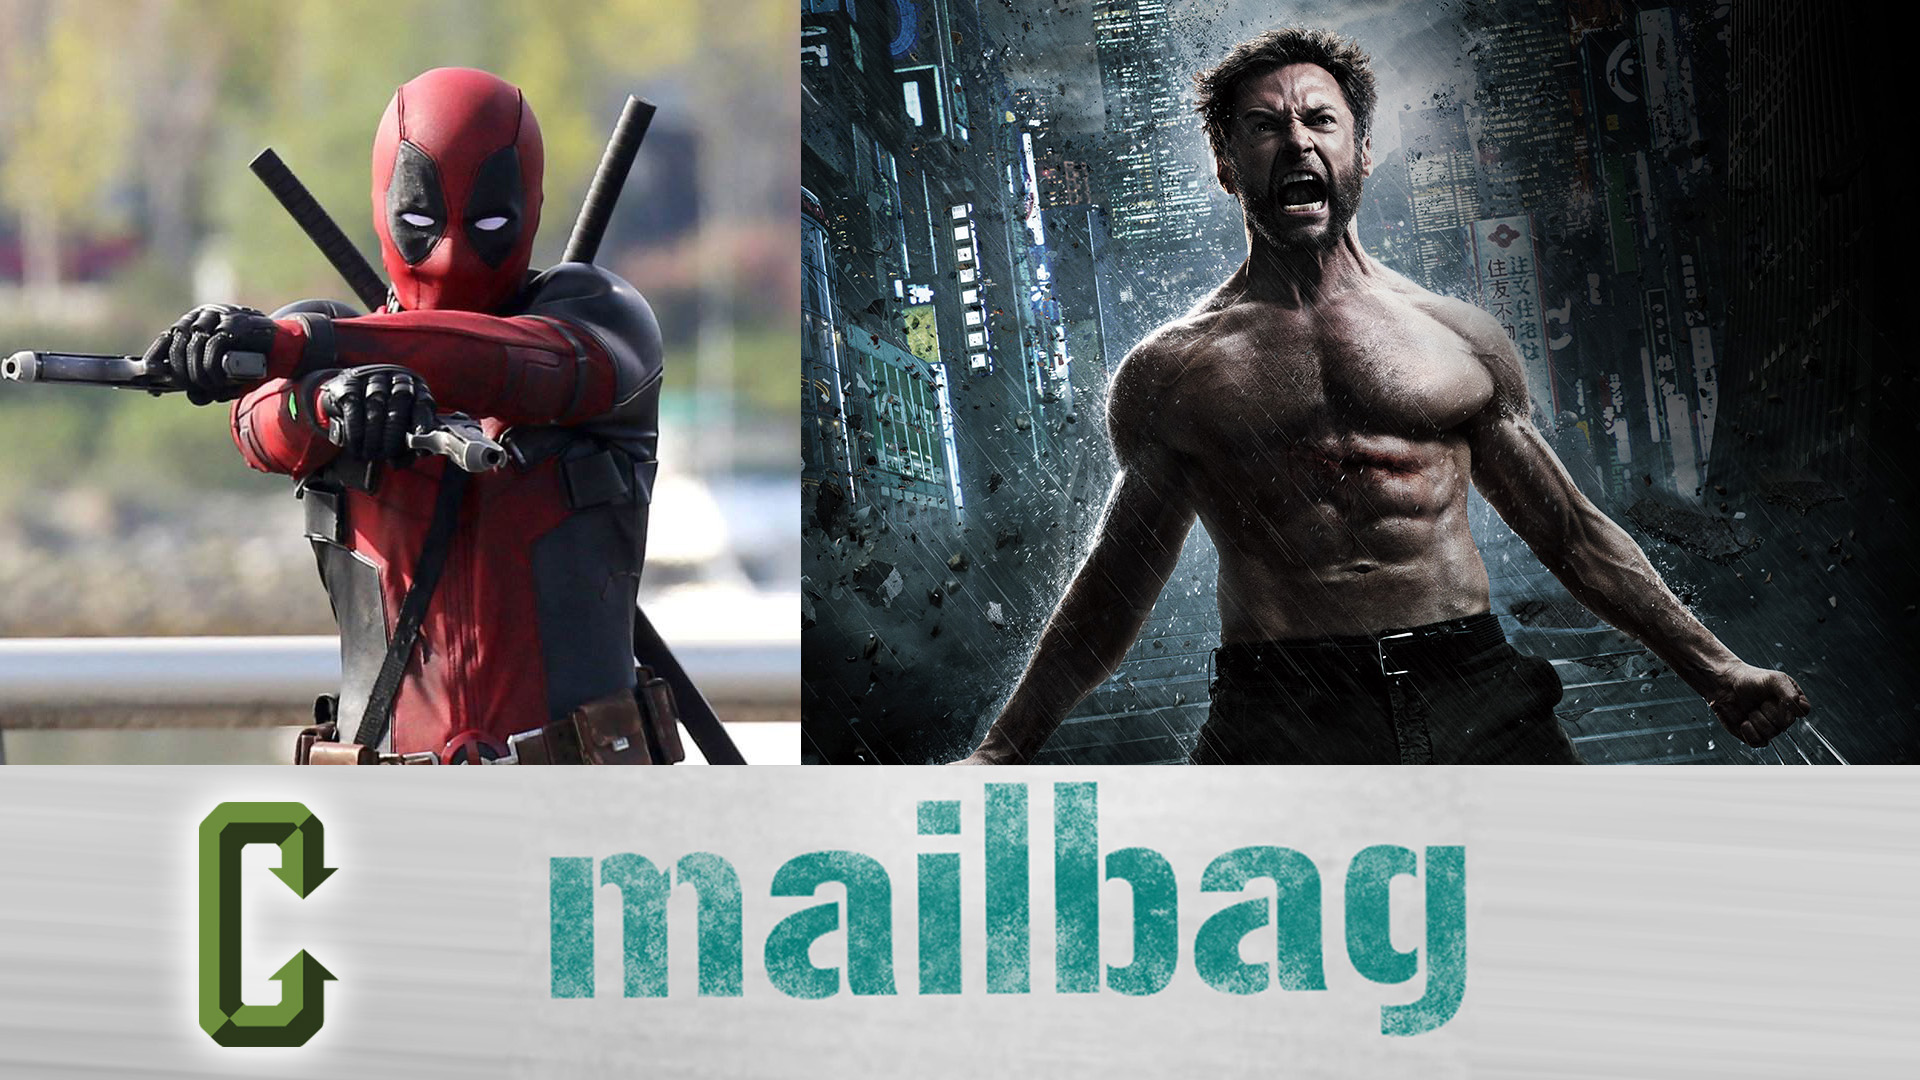 Collider Mailbag - Will A Successful Deadpool Movie Lead To R-Rated Wolverine?